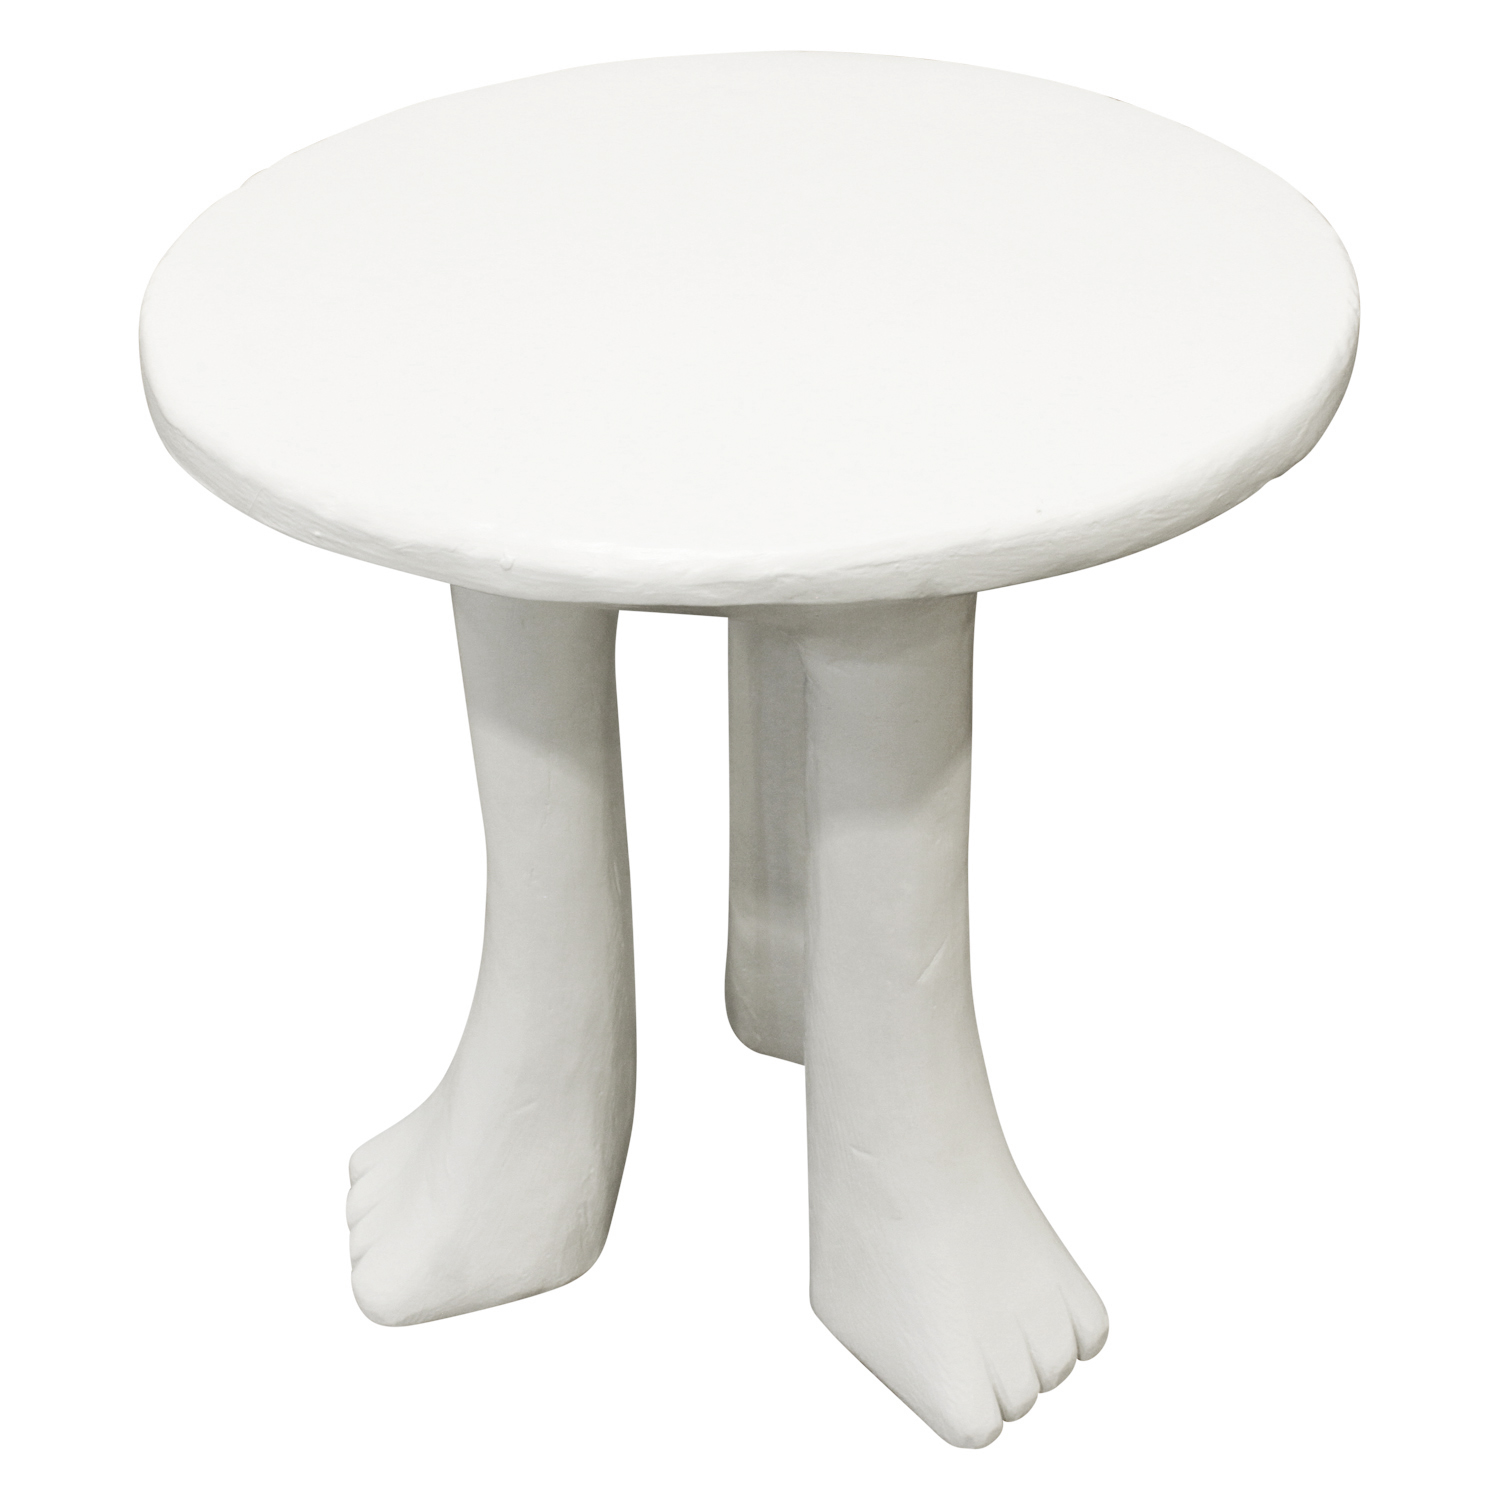 Dickinson 175 lrg African Table endtable195 top.jpg